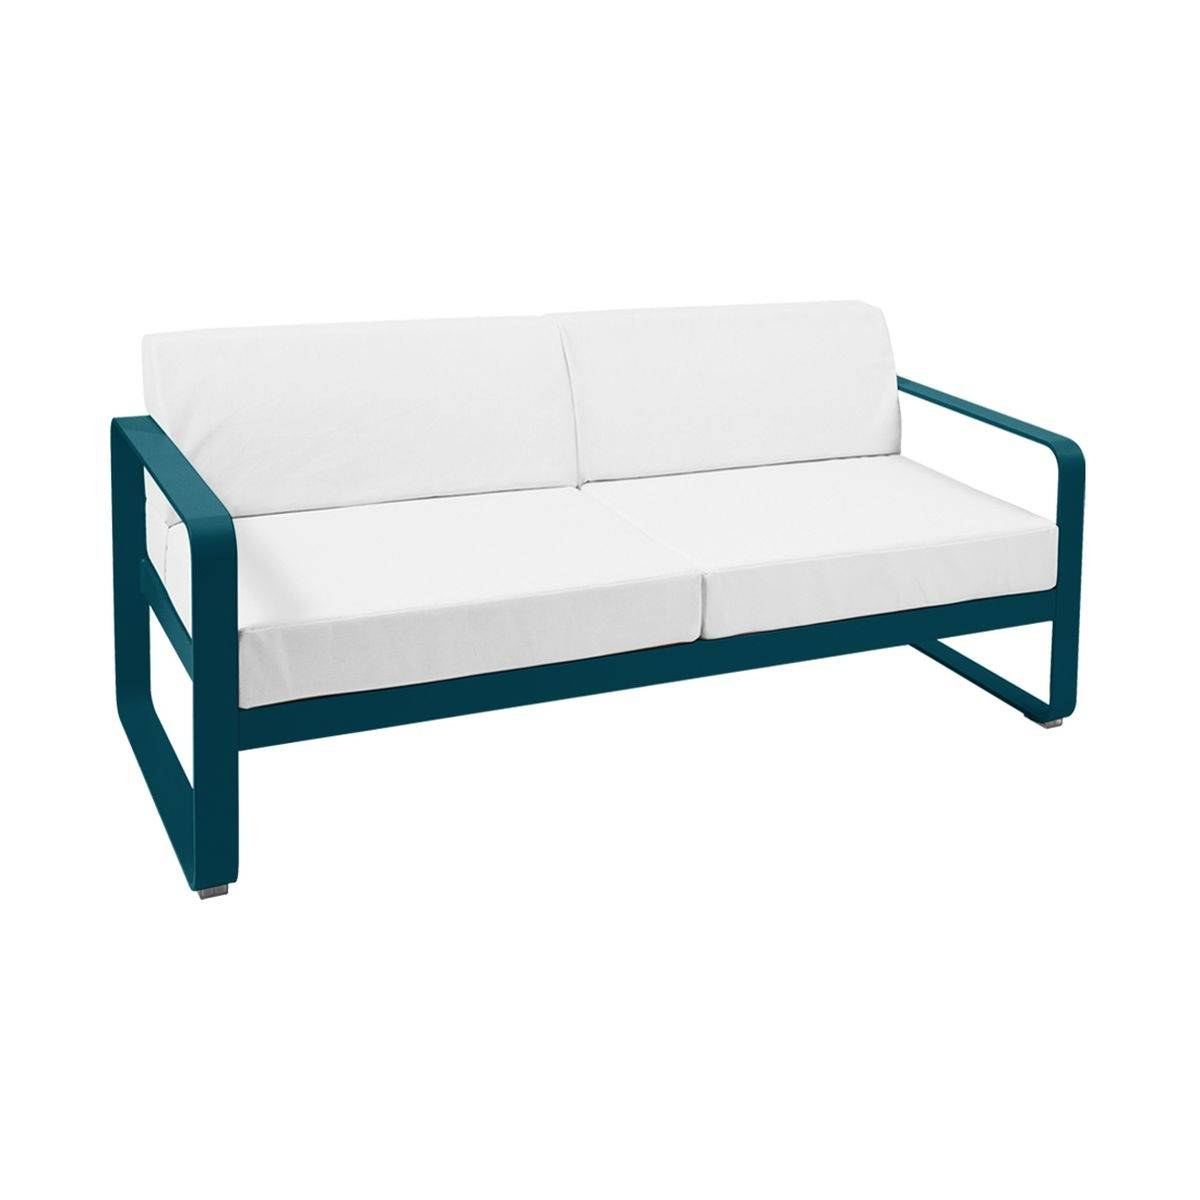 Prime Fermob Bellevie 2 Seat Sofa Off White Cushions Outdoor Gmtry Best Dining Table And Chair Ideas Images Gmtryco